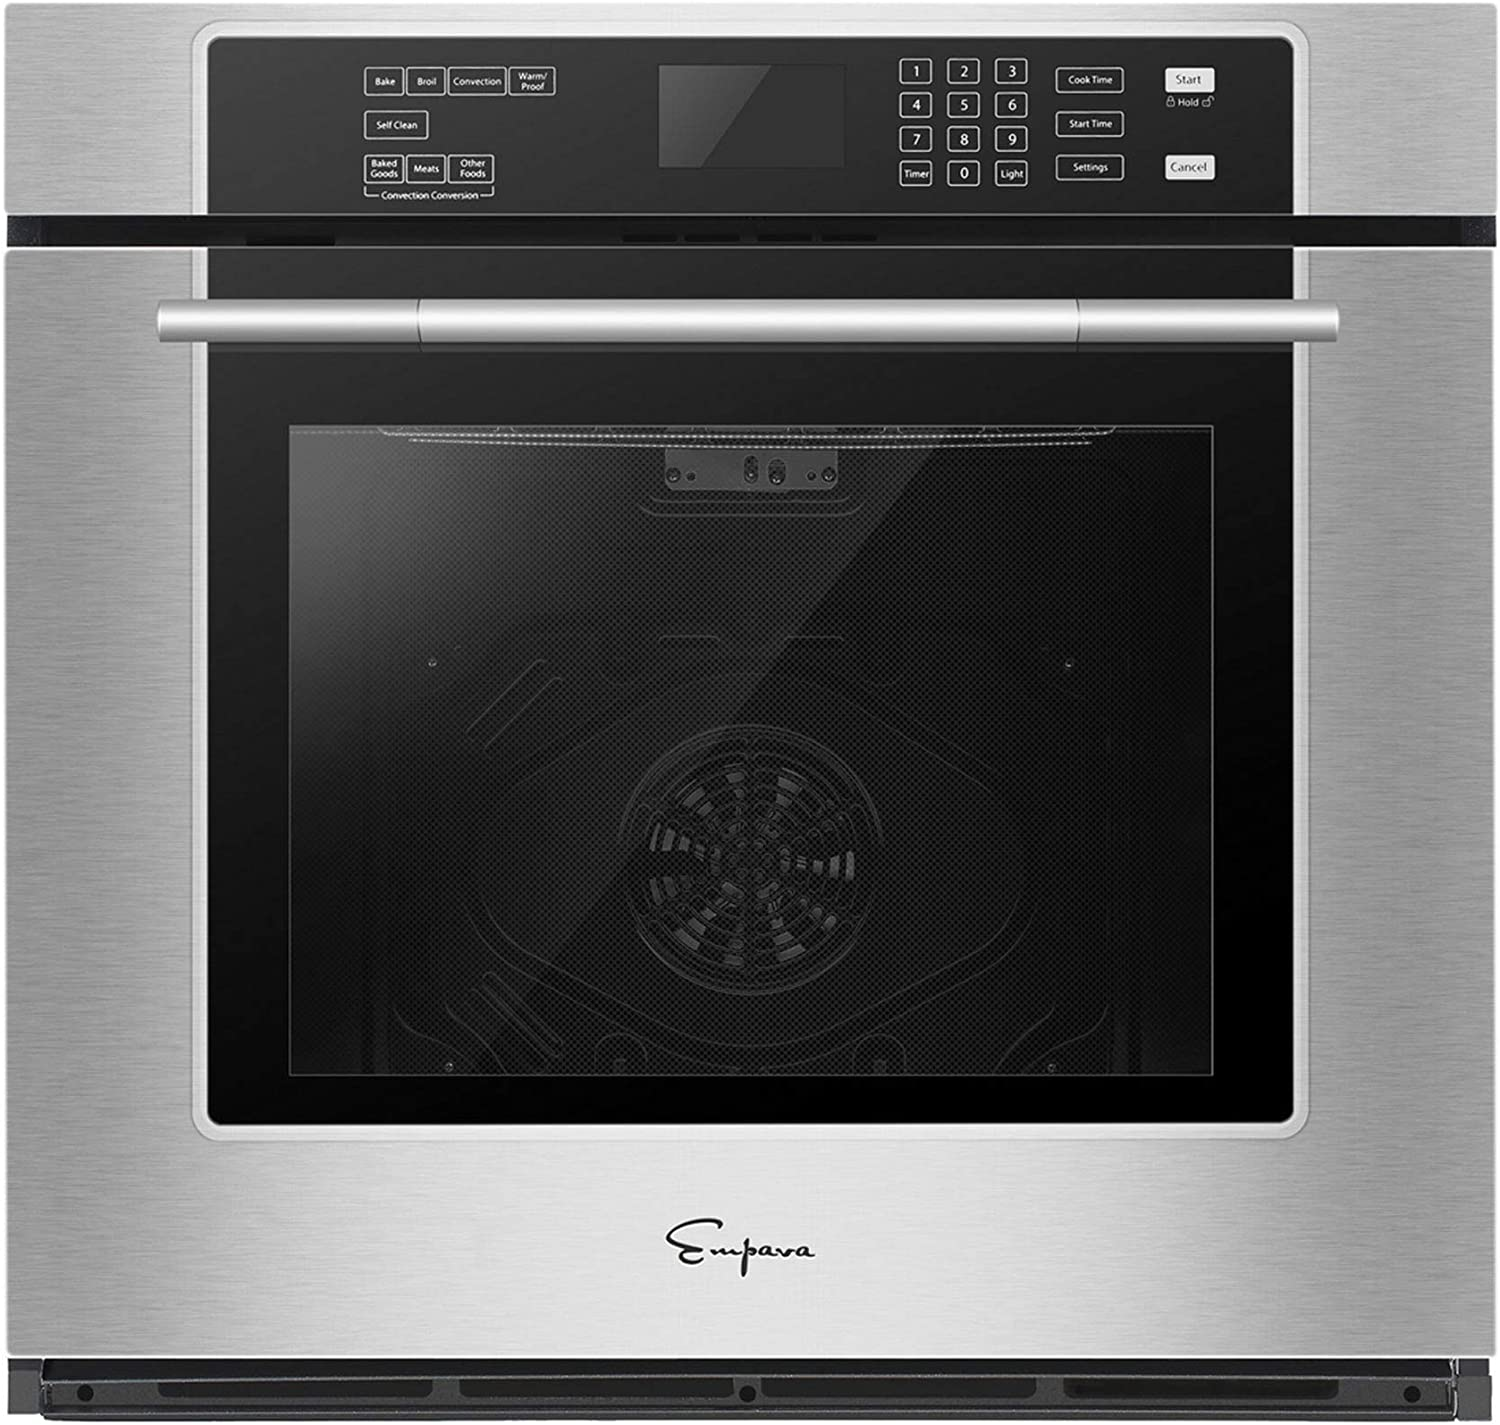 Empava 30 in Stainless Steel Single Wall Ovens with Self-cleaning Convection Fan Digital Touch Control Black, 30 Inch